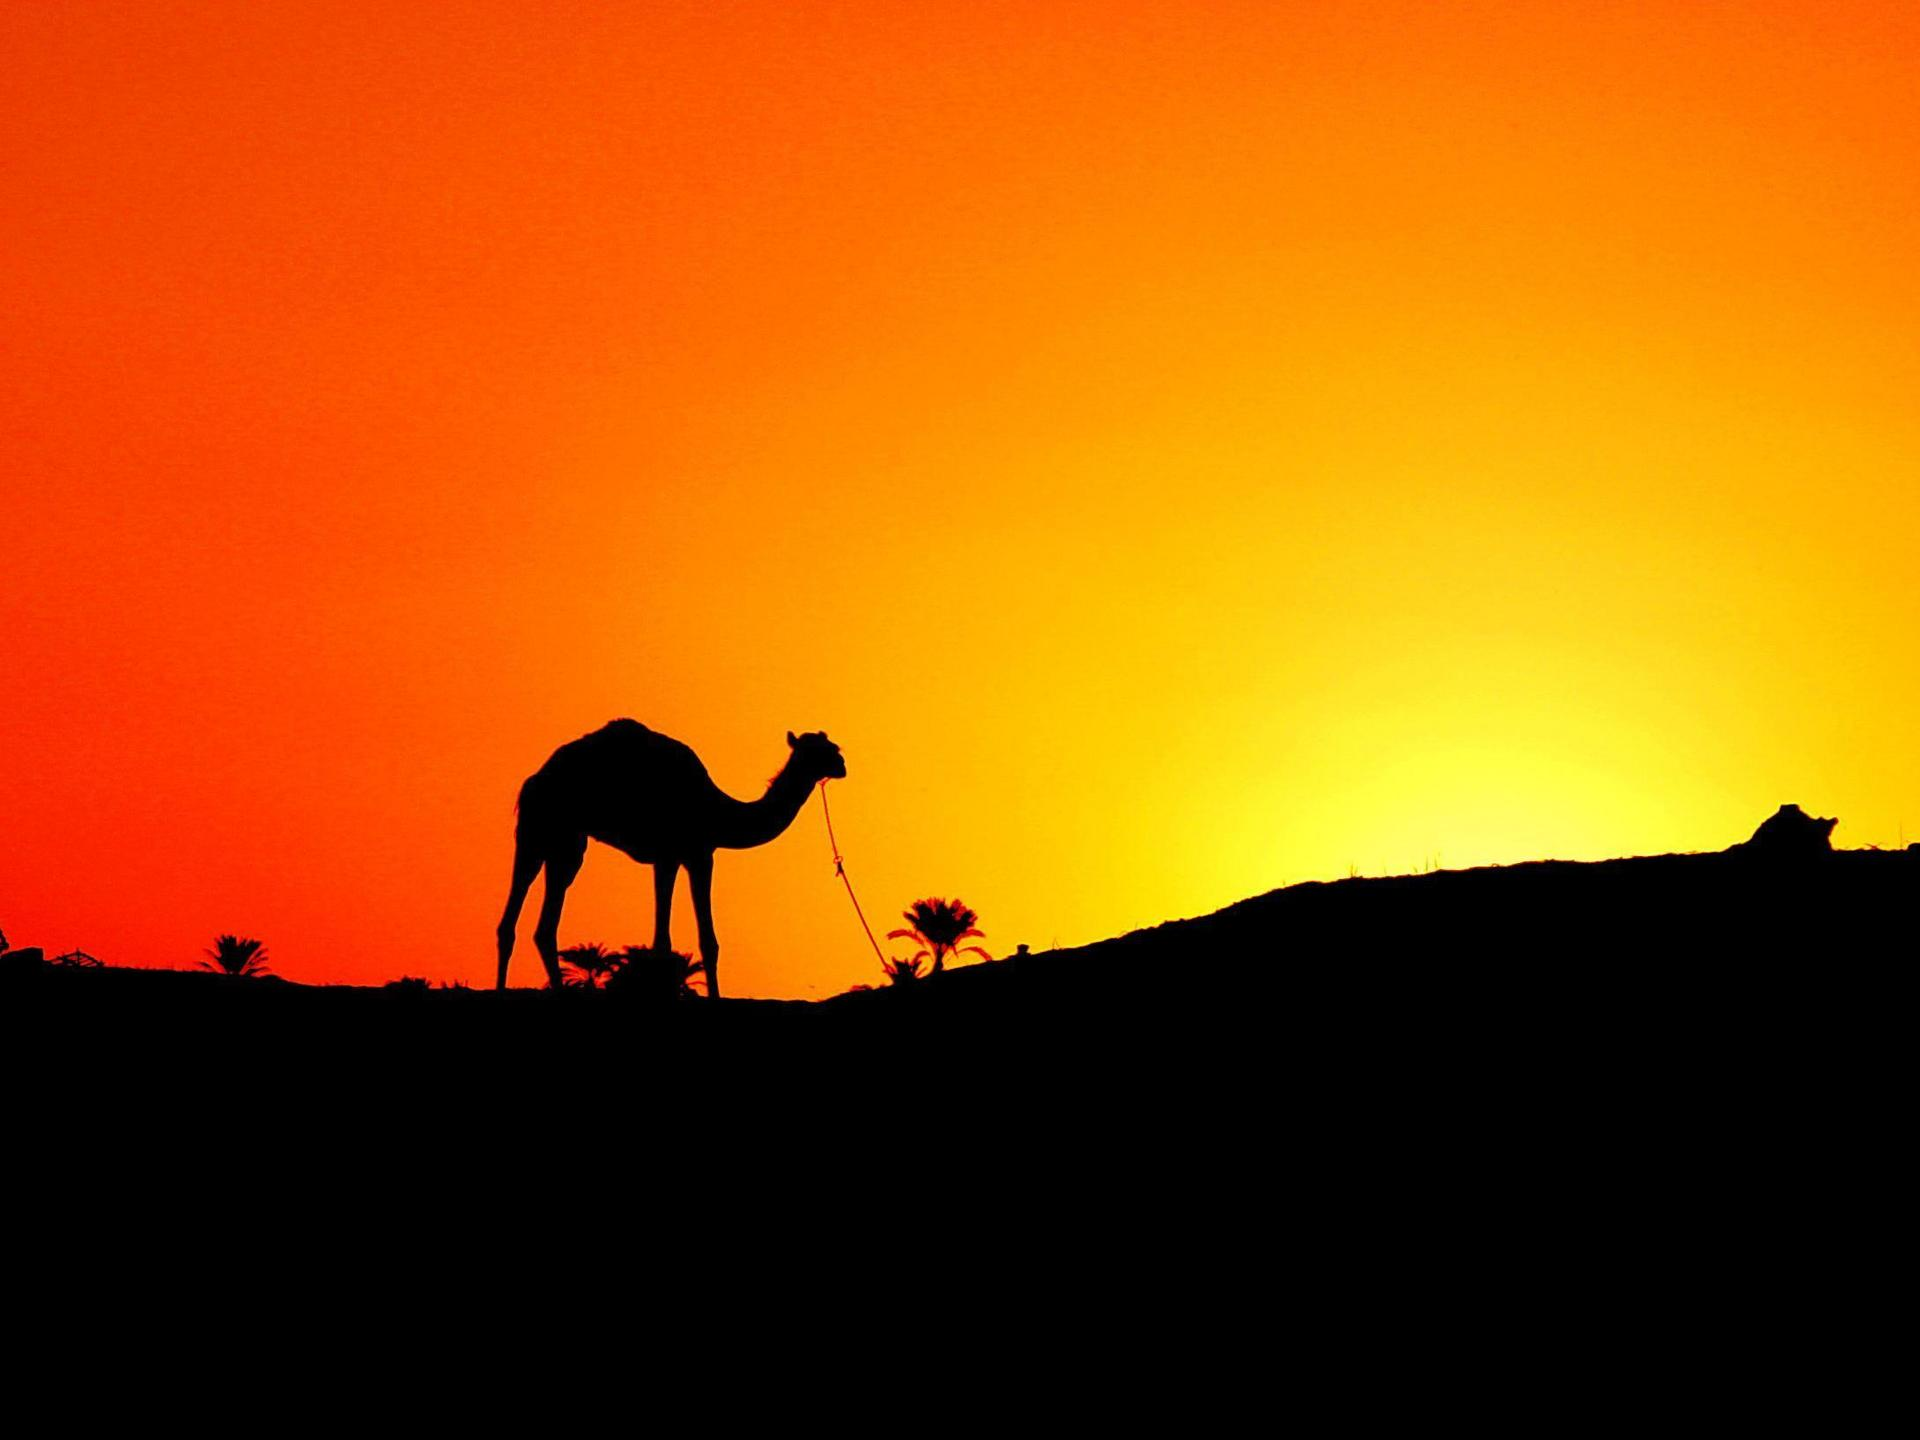 kameel, camel In The Sunset